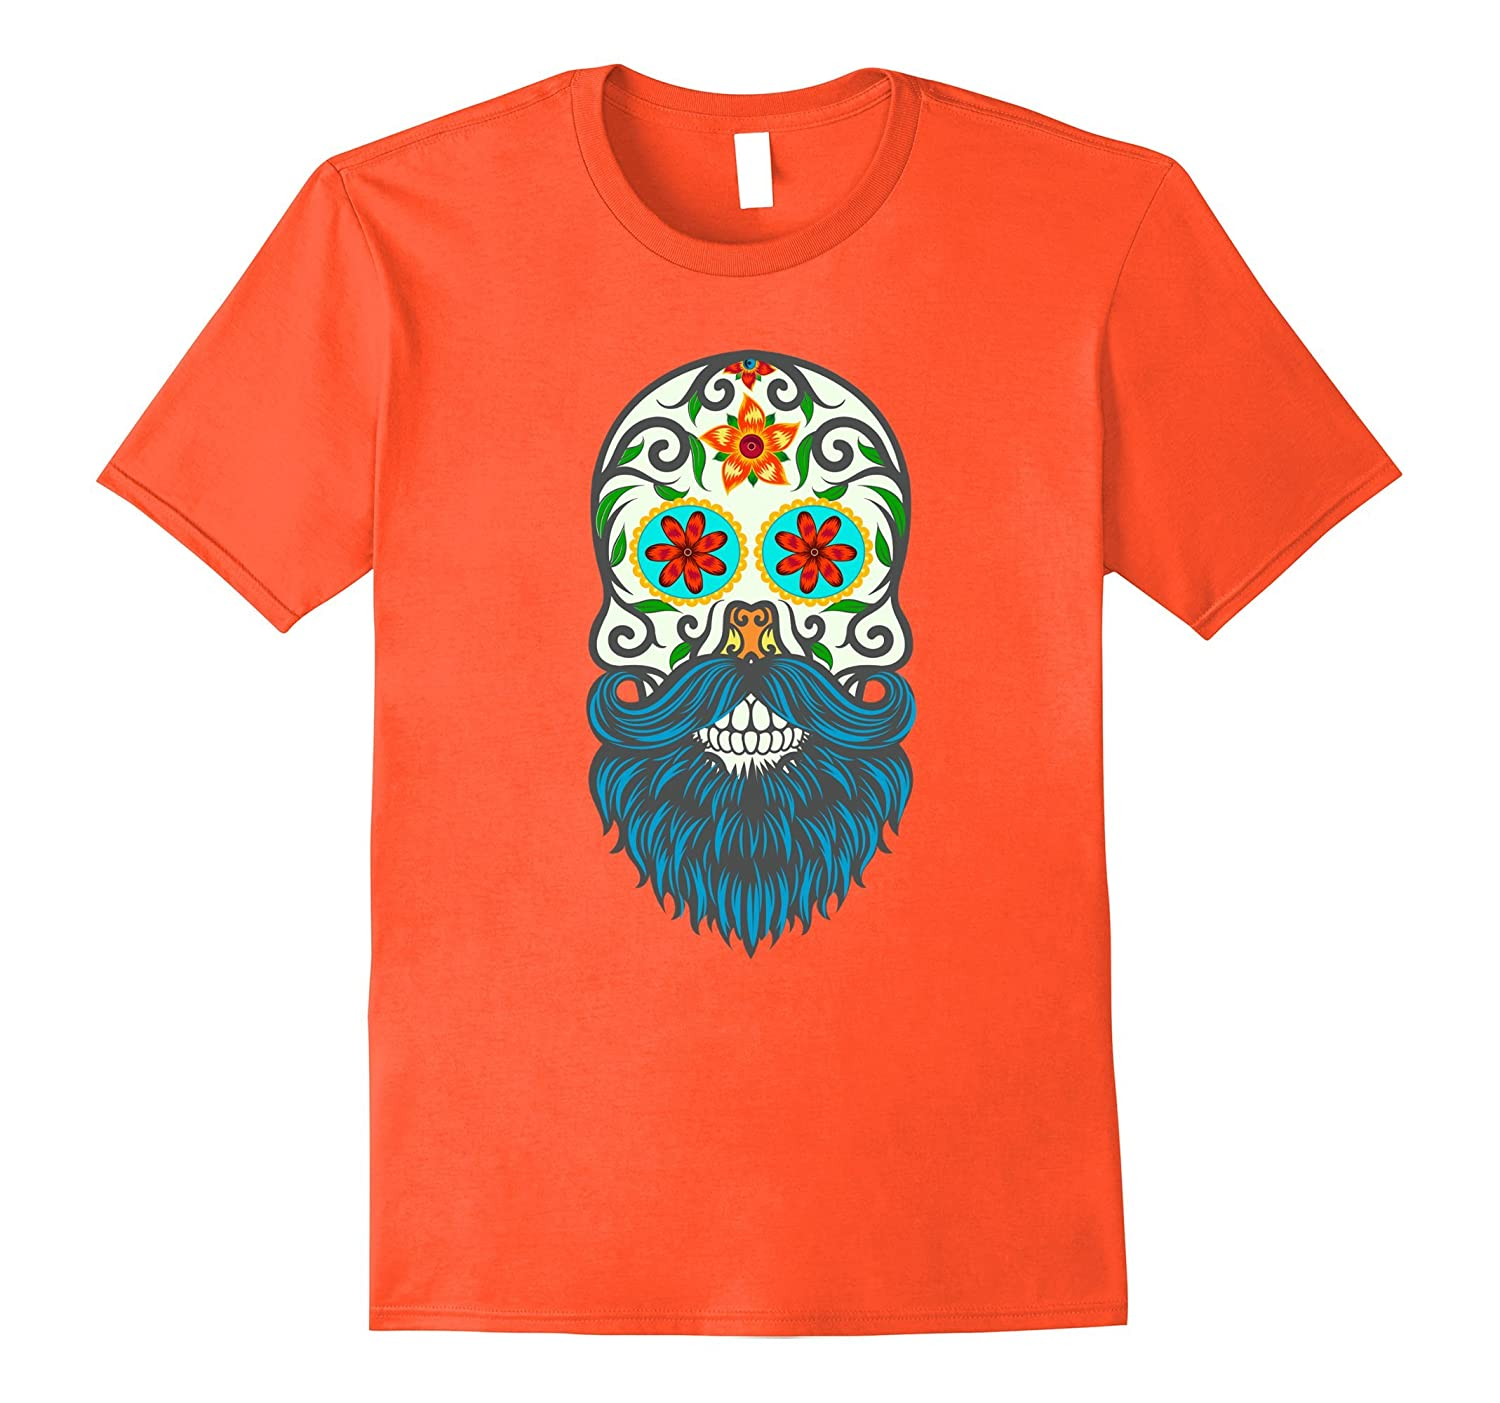 89a9459e4 Day of the Dead Sugar Skull Beard T-shirt-ANZ ⋆ Anztshirt